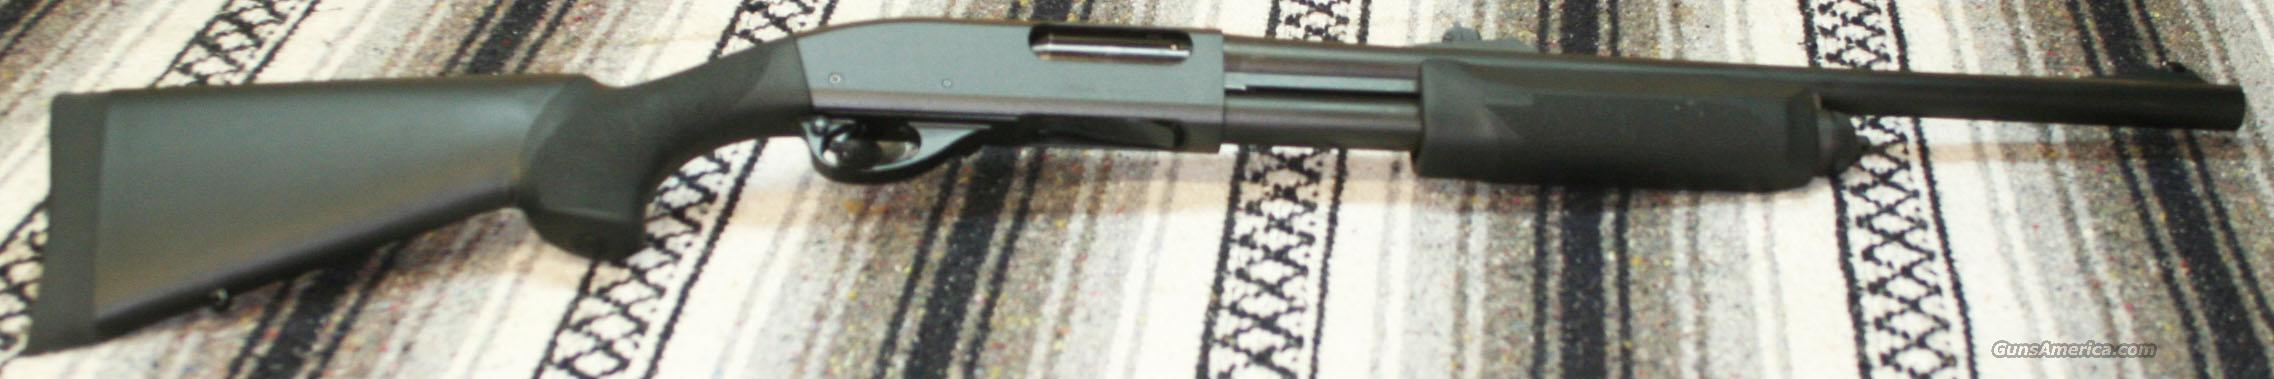 Remington Special Purpose Magnum 12ga Hogue Stock  Guns > Shotguns > Remington Shotguns  > Pump > Tactical